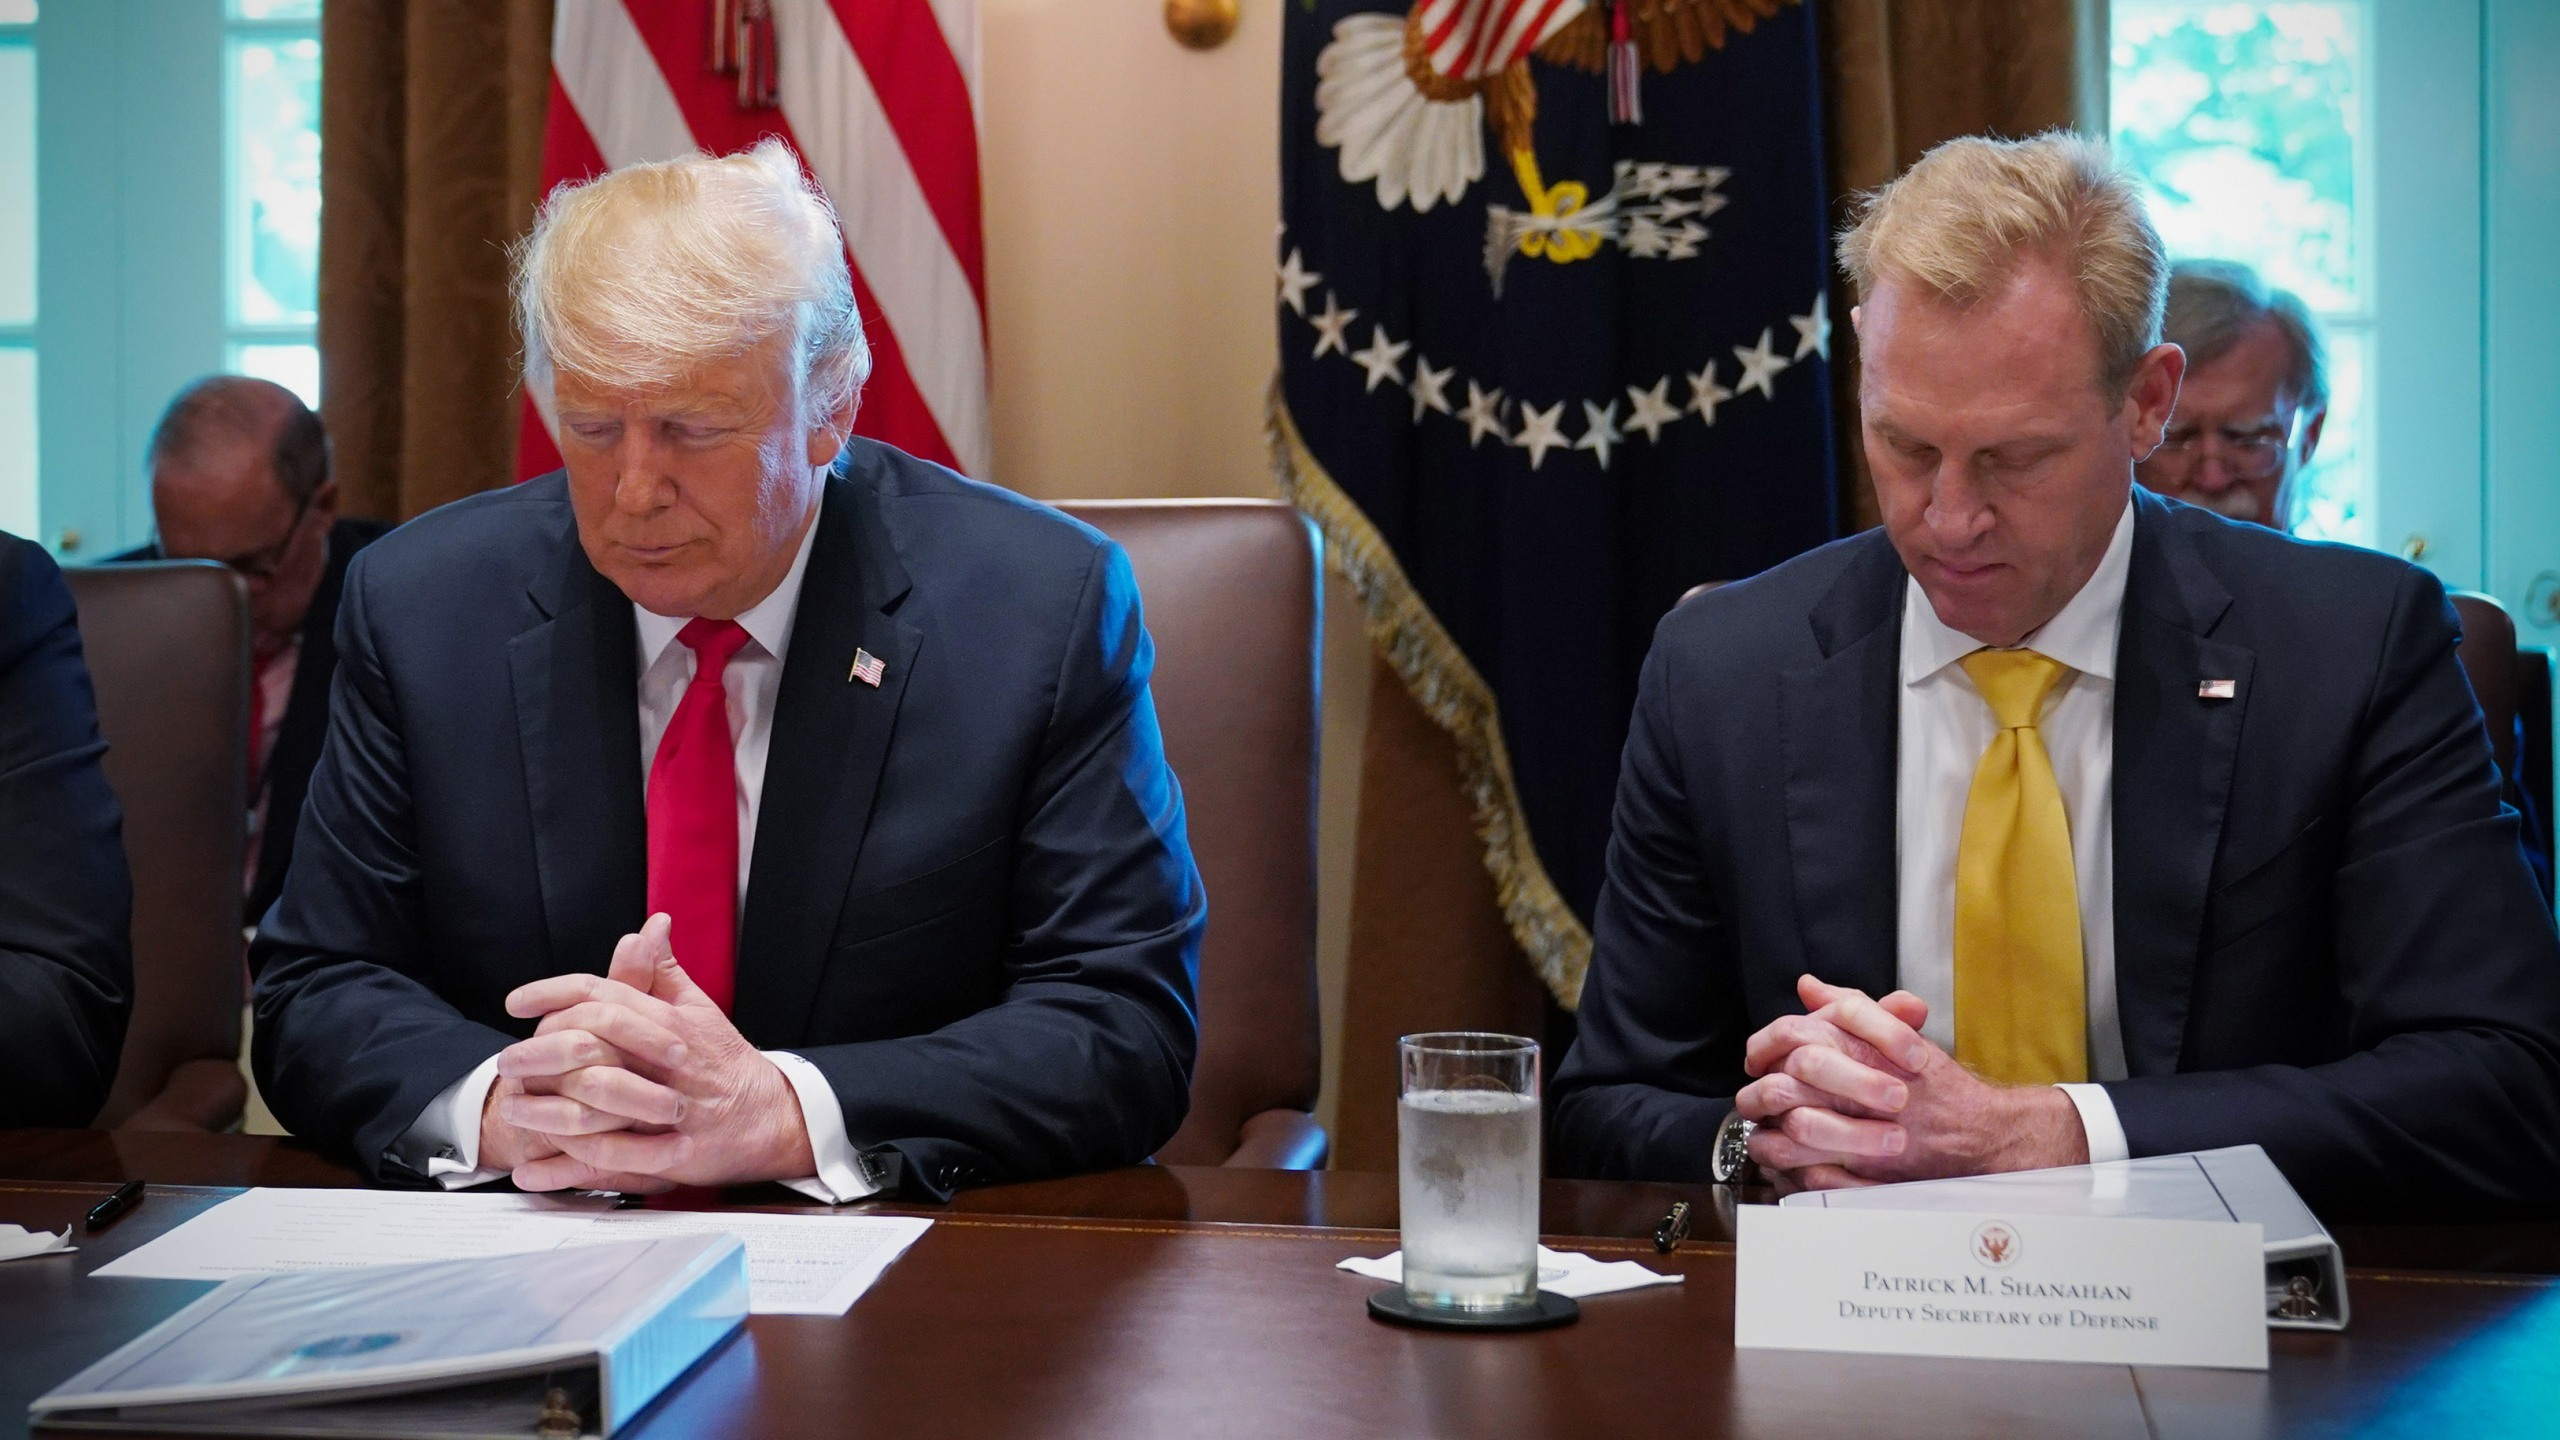 Donald Trump and Patrick Shanahan bow their heads in prayer before the start of a Cabinet meeting in the Cabinet Room of the White House on Aug. 16, 2018. (Credit: MANDEL NGAN/AFP/Getty Images)